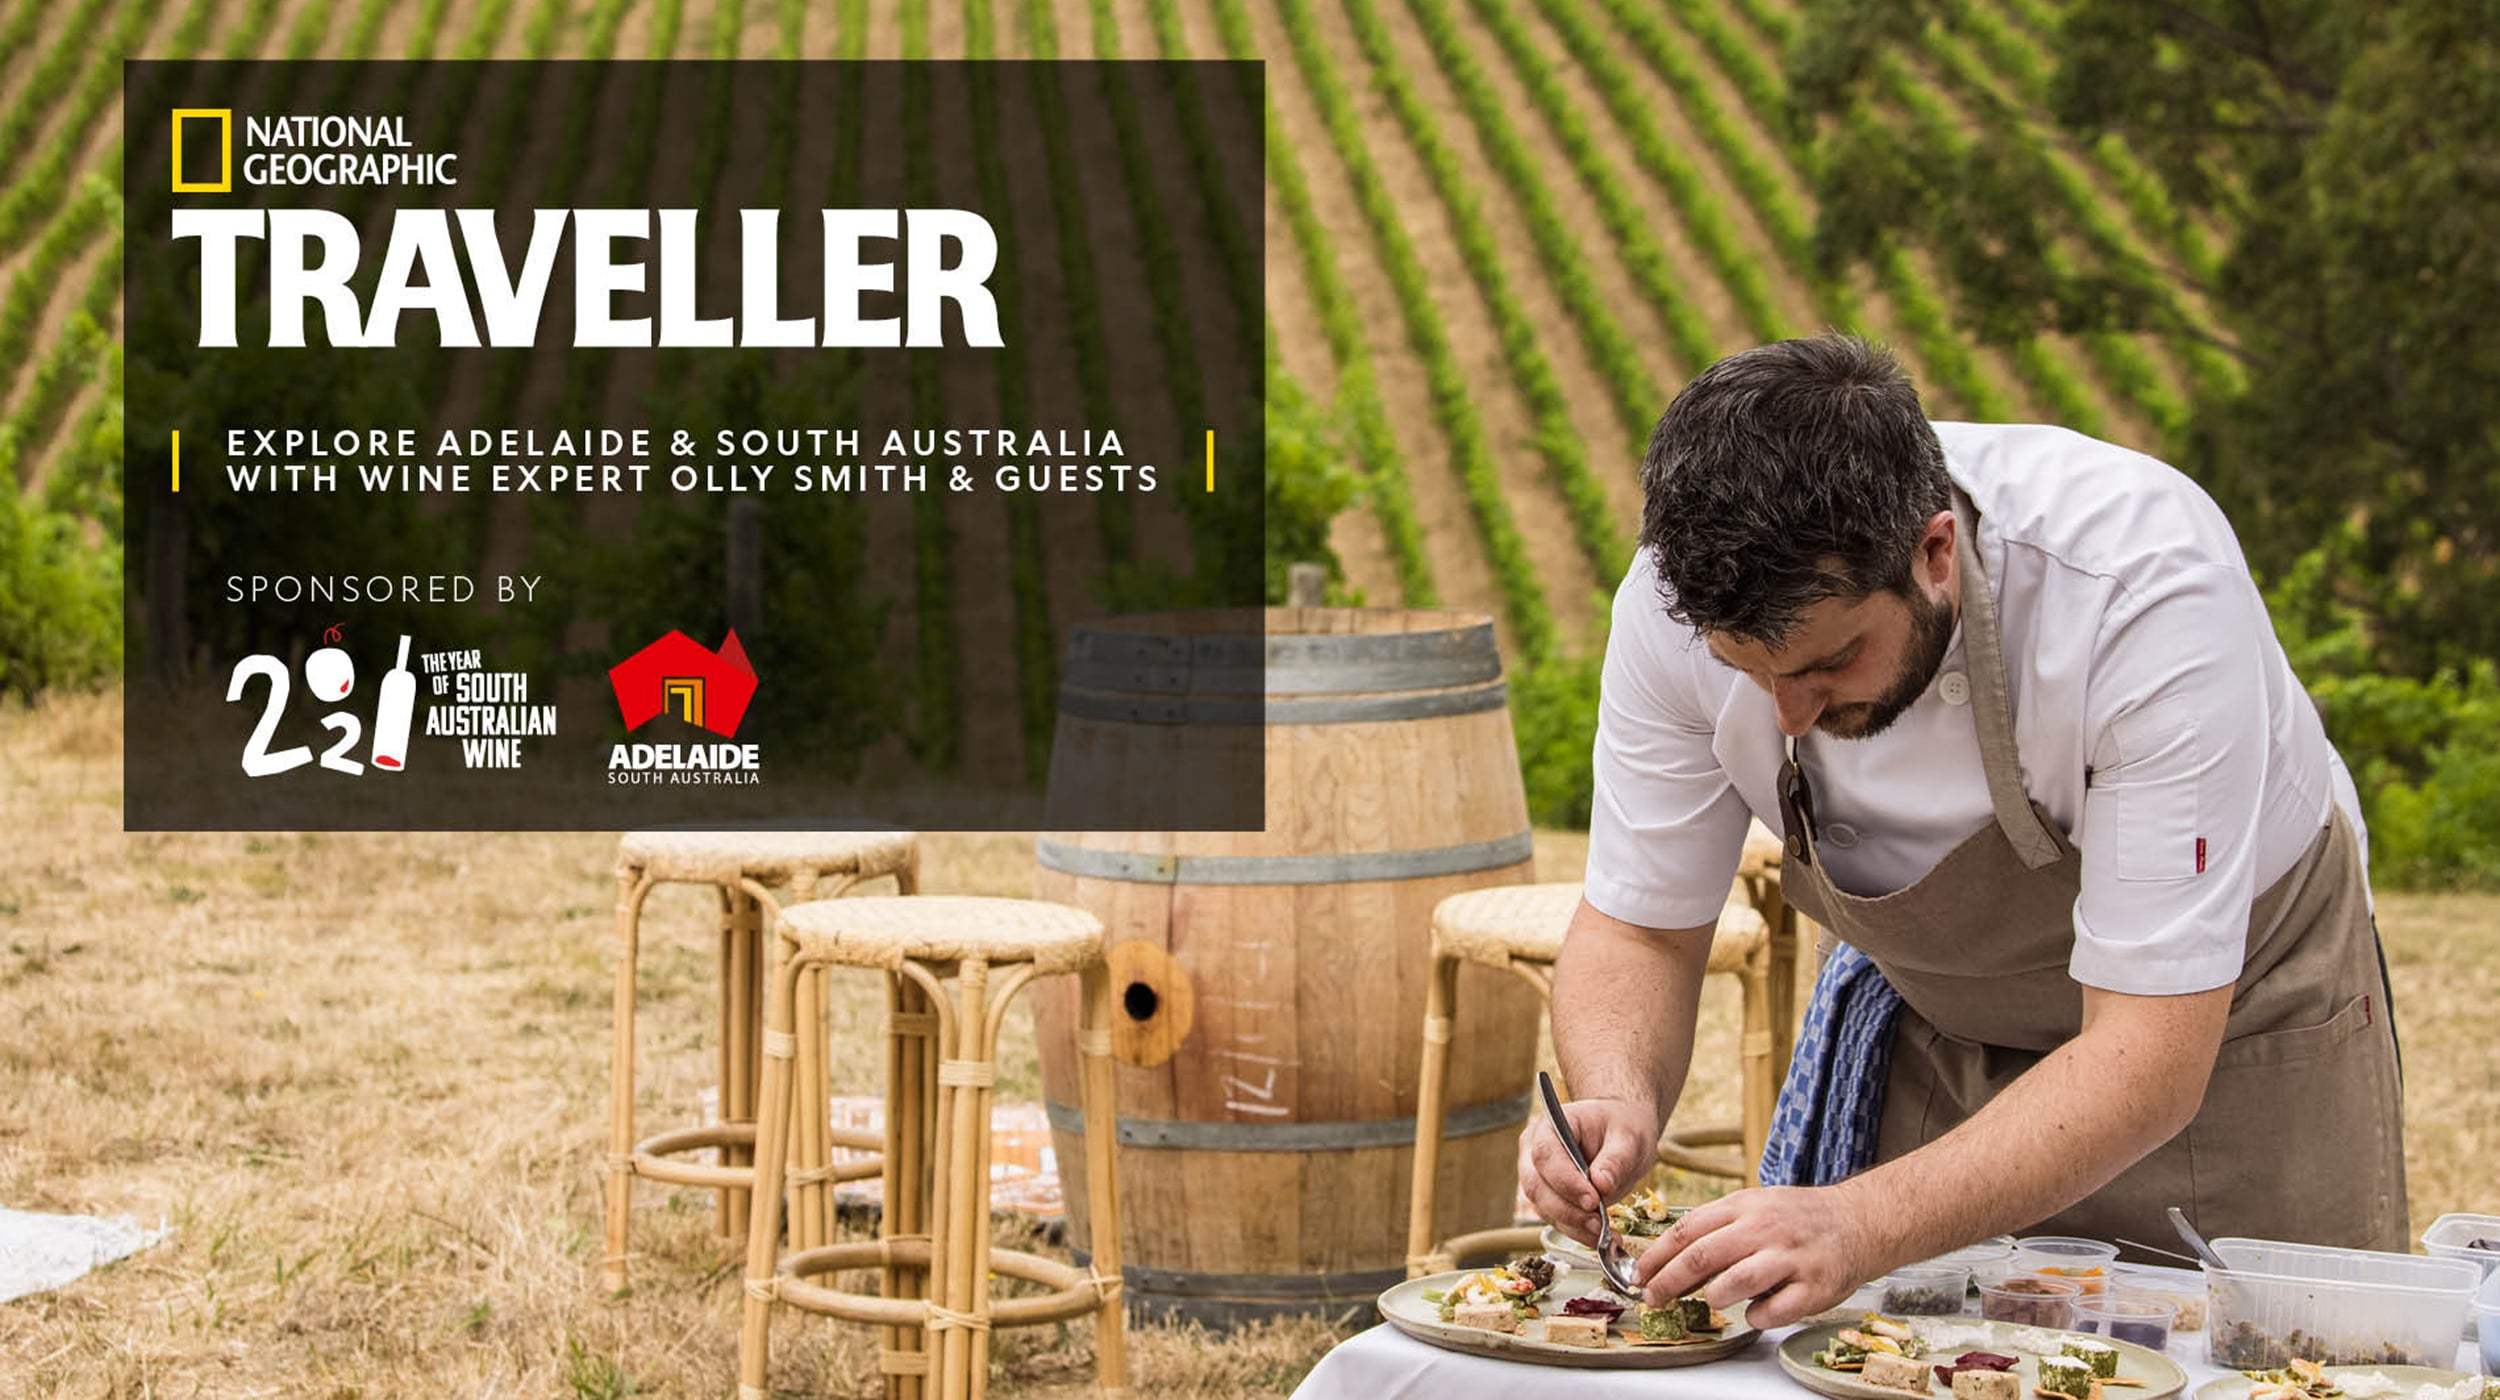 National Geographic Traveller (UK) event with South Australia.